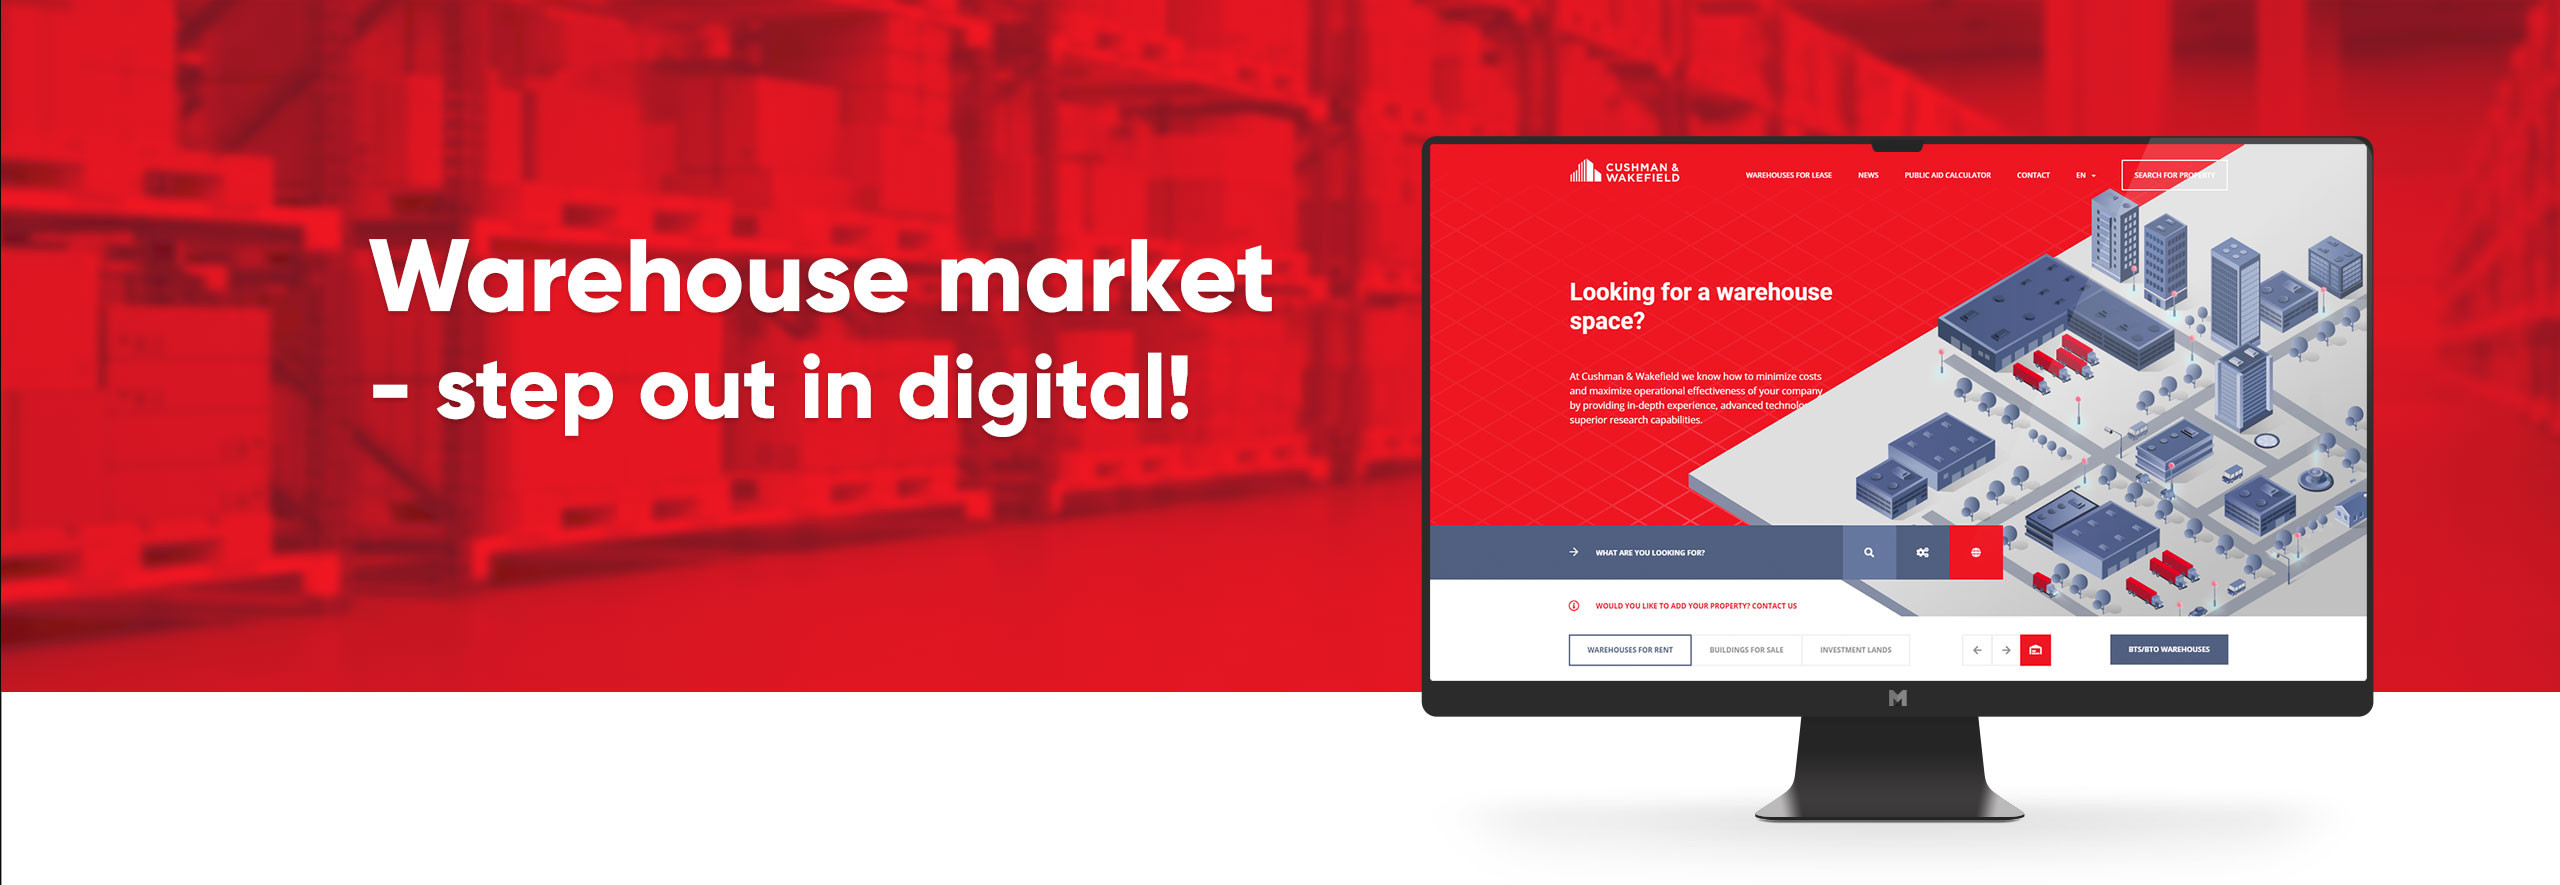 Warehouse market - step out in digital!